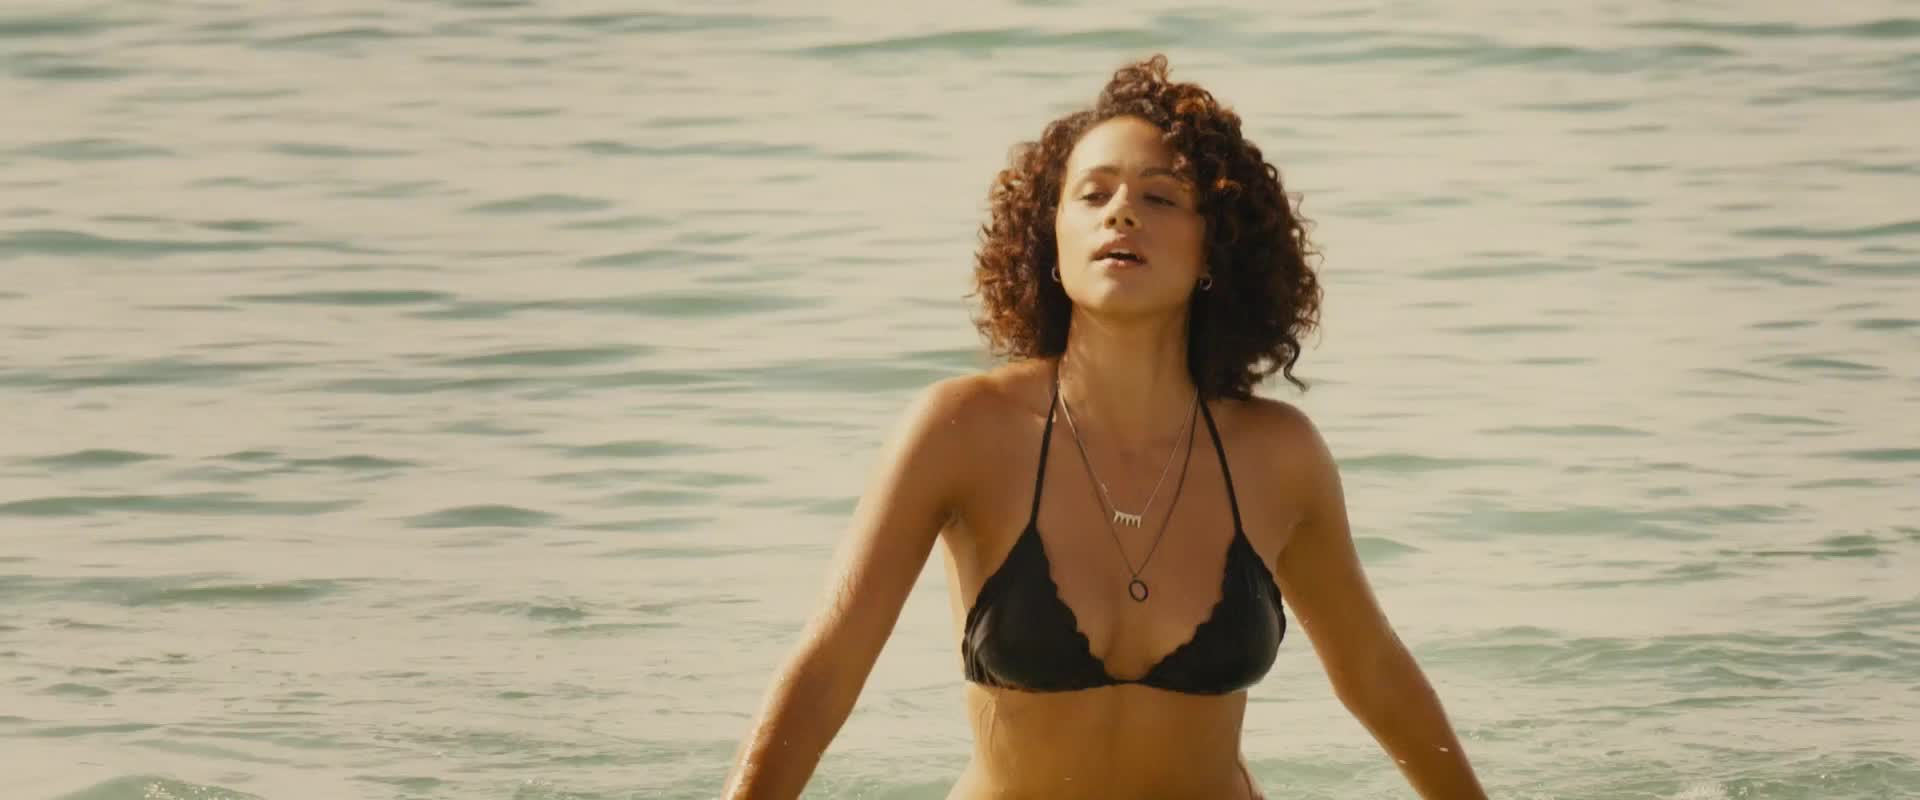 Bikini Nathalie Emmanuel naked (49 foto and video), Tits, Paparazzi, Feet, swimsuit 2006